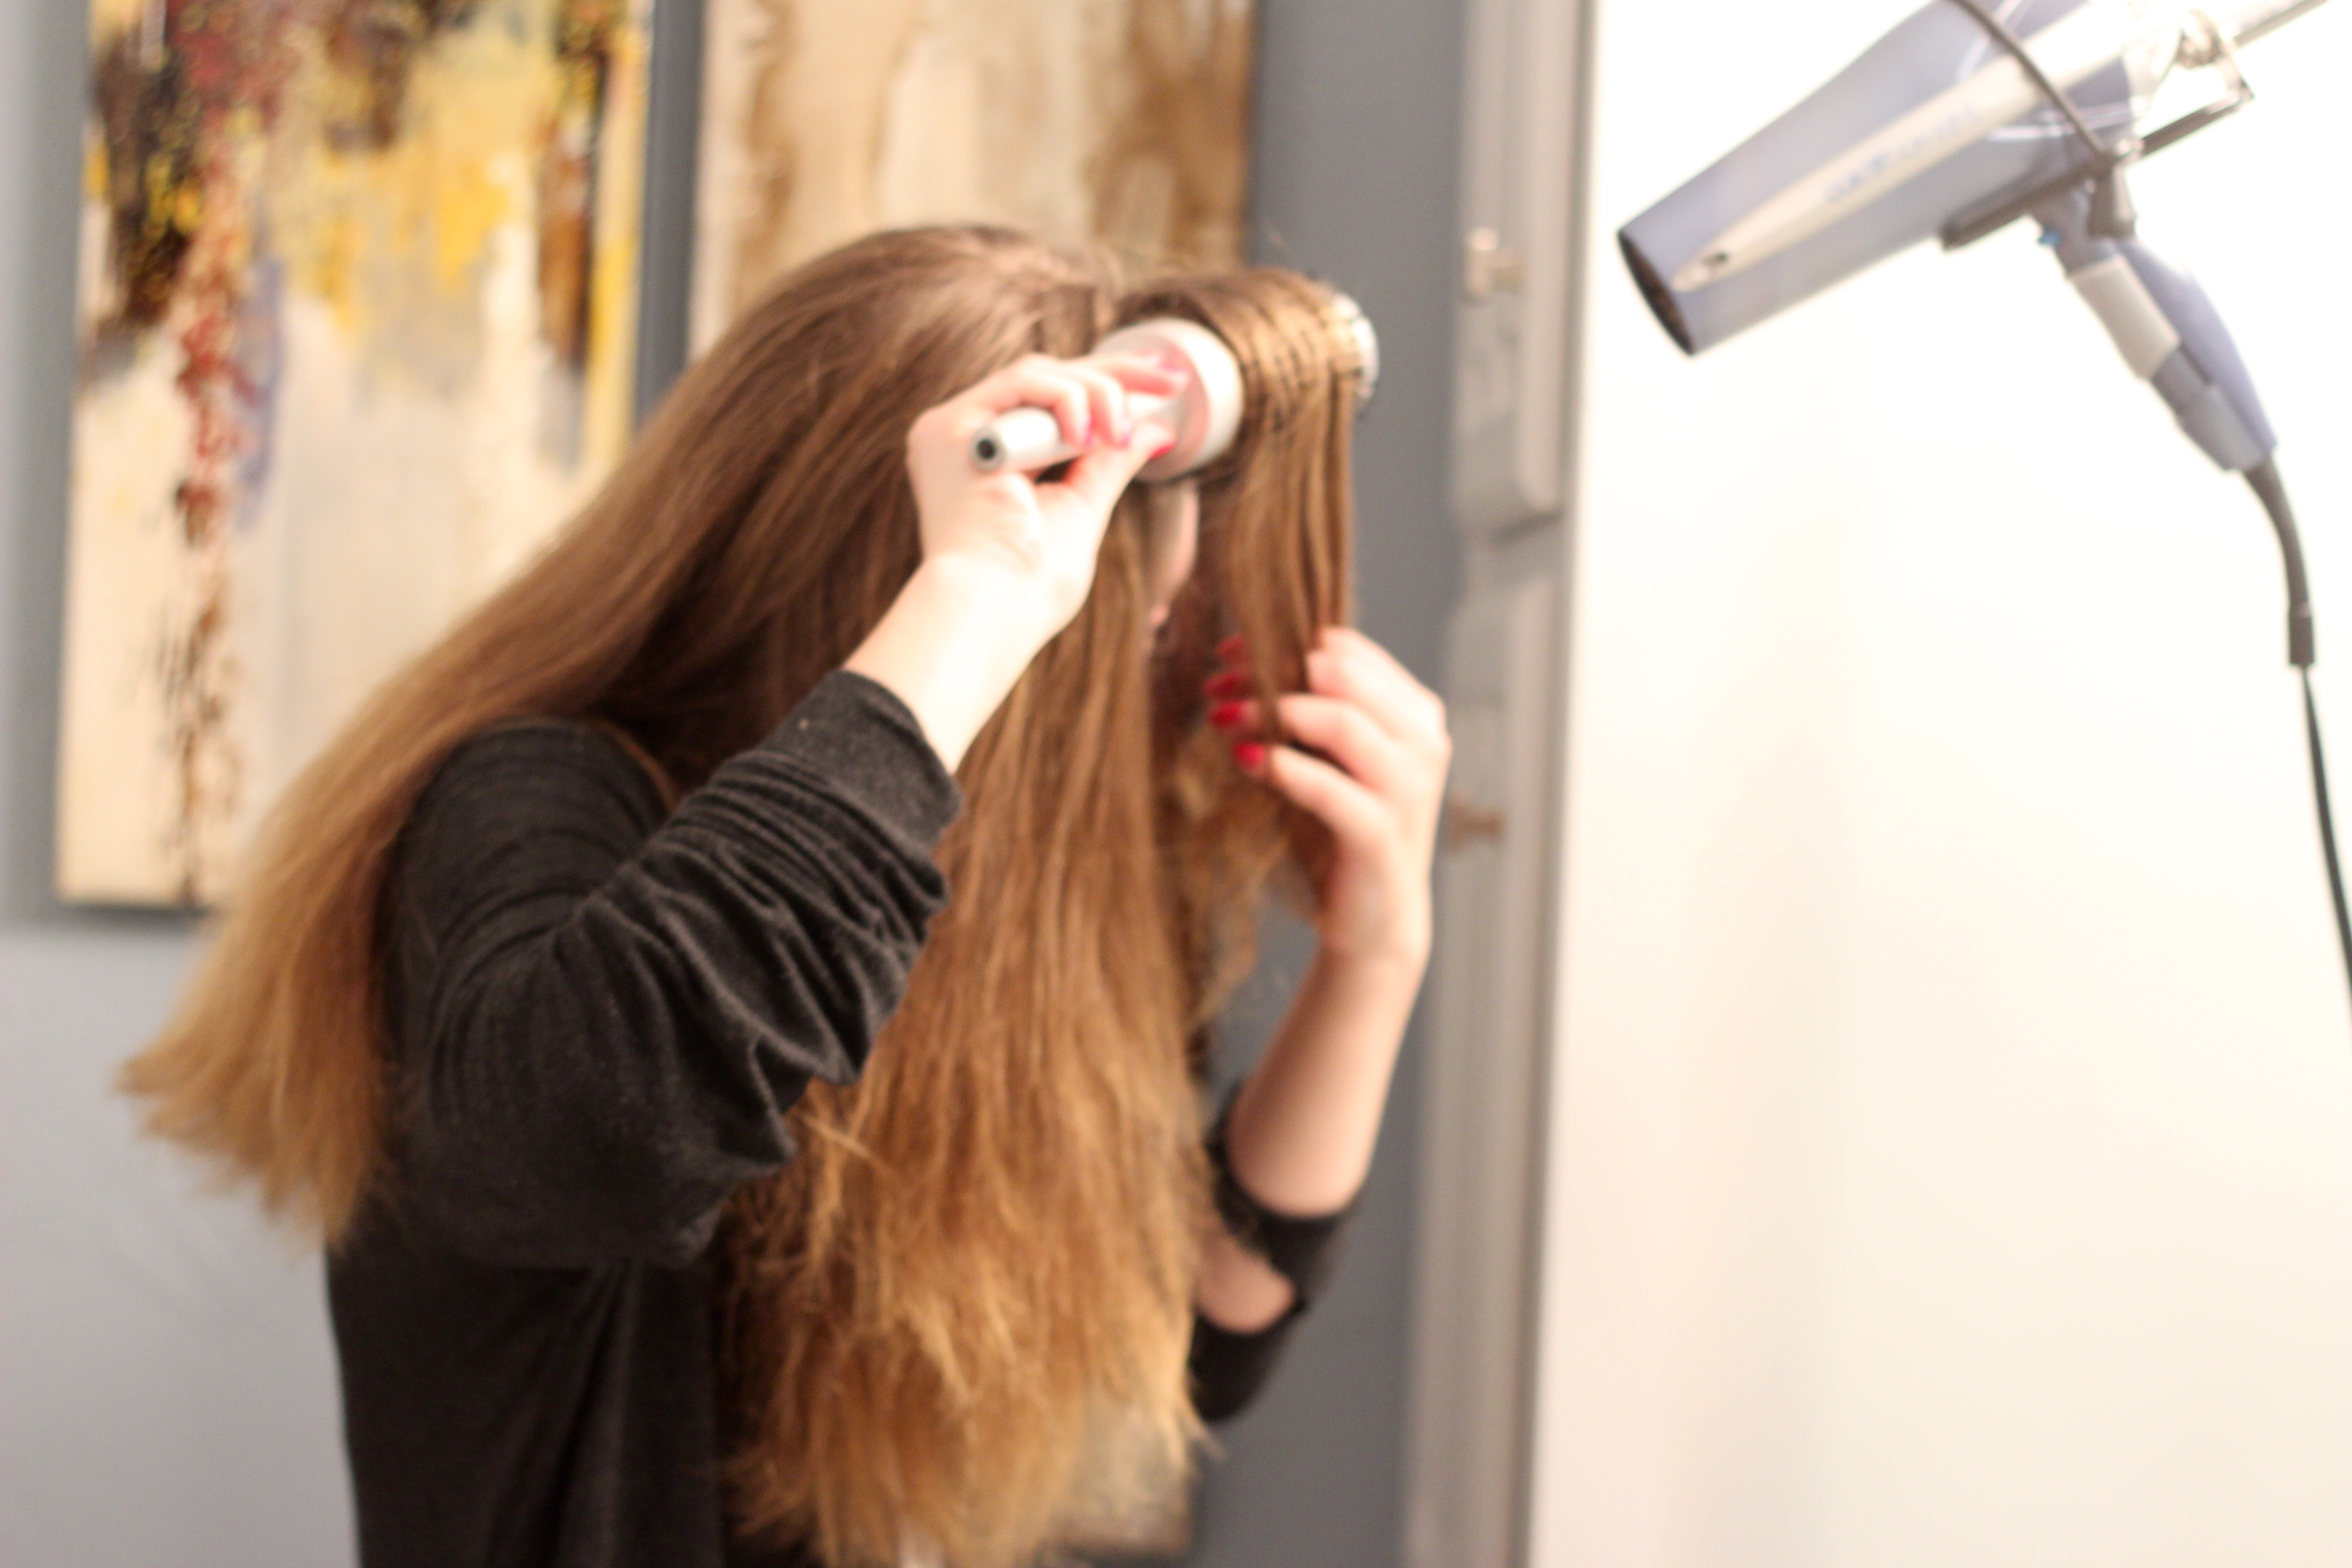 tips for the best way to blow dry your hair - Round Brush from Frizzy to Sleek Hair by popular Texas style blogger Audrey Madison Stowe